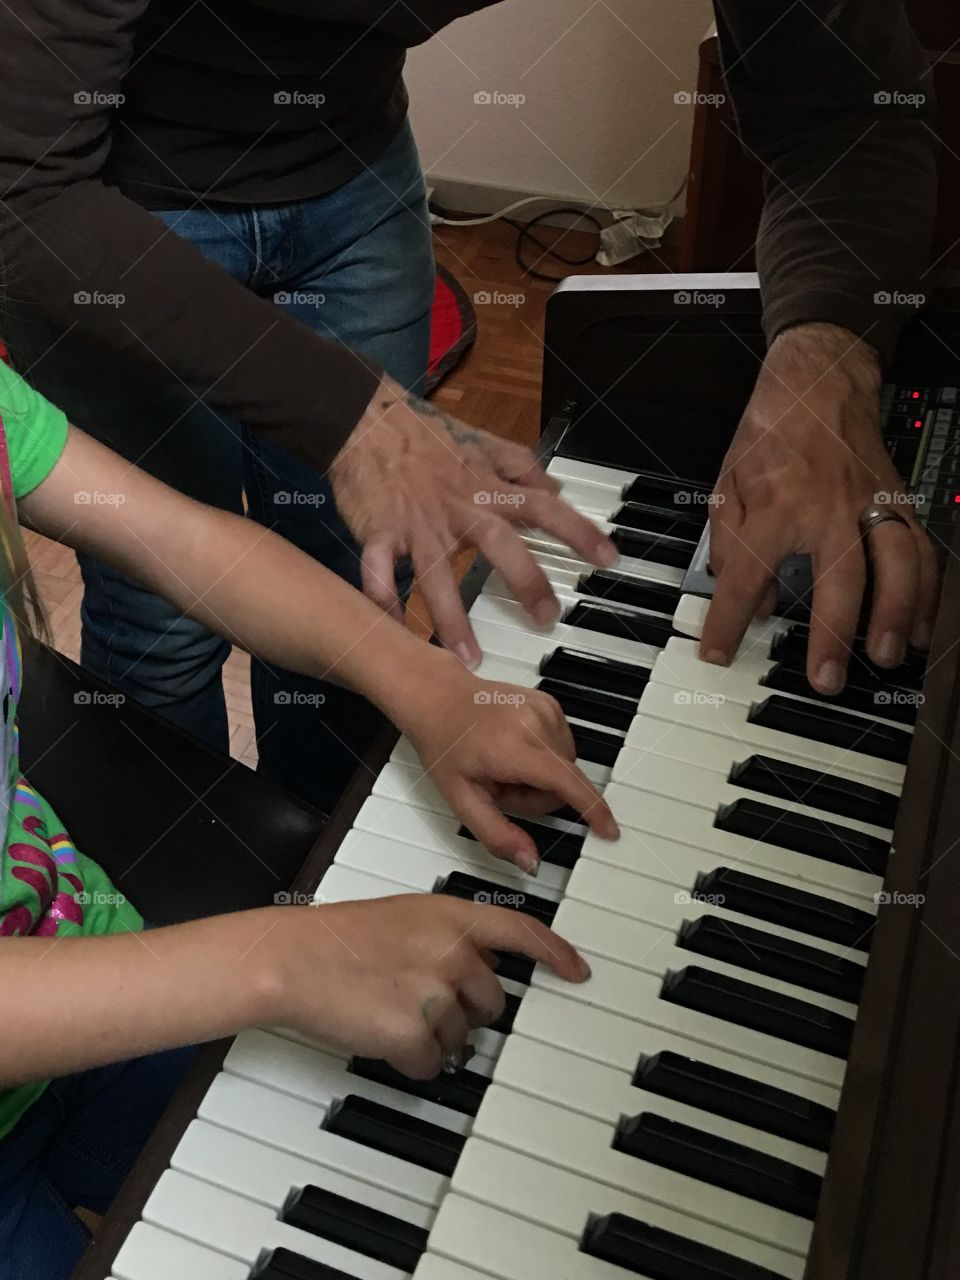 Father and daughter hands playing the organ together.